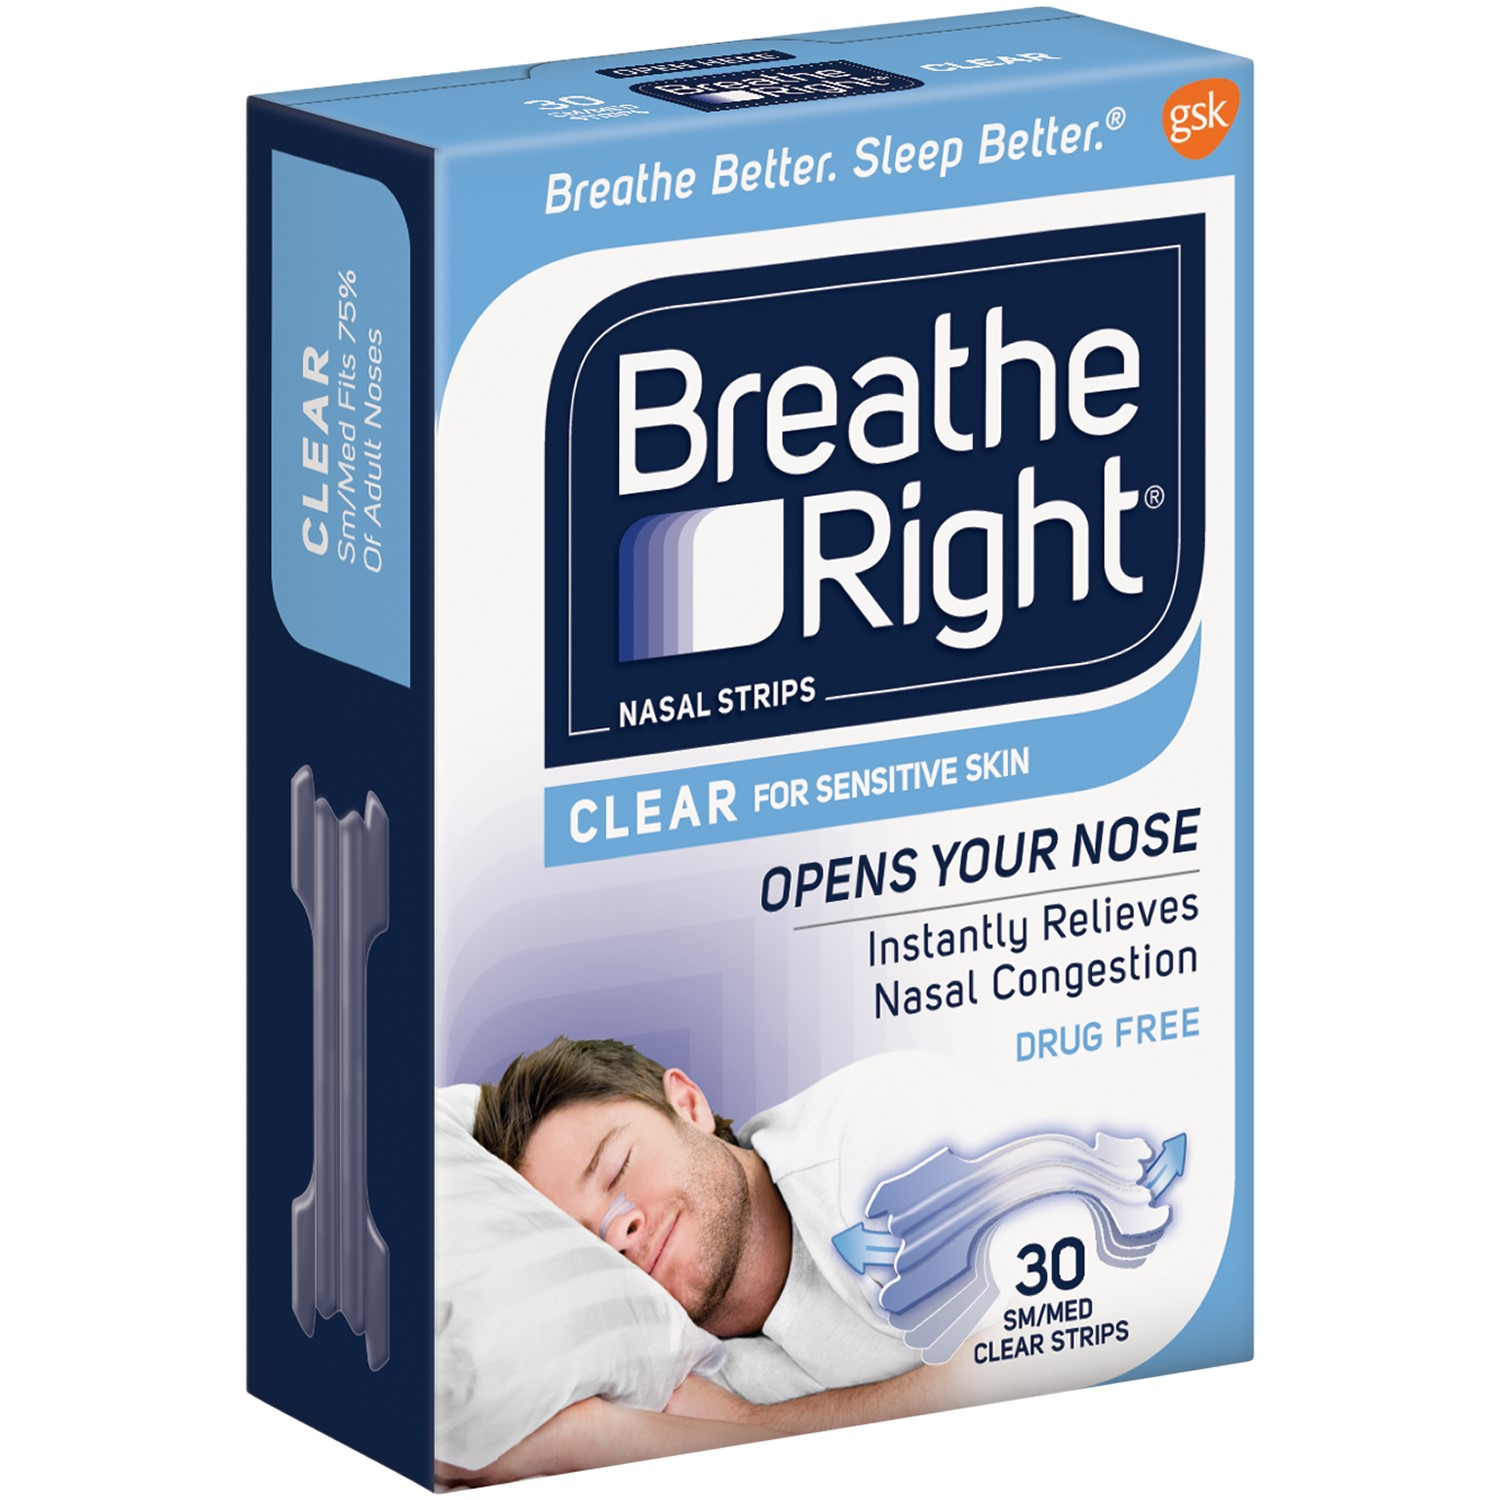 Breathe Right Drug Free Snoring & Congestion Nasal Strips, Clear, Small/Medium, 30 Ct